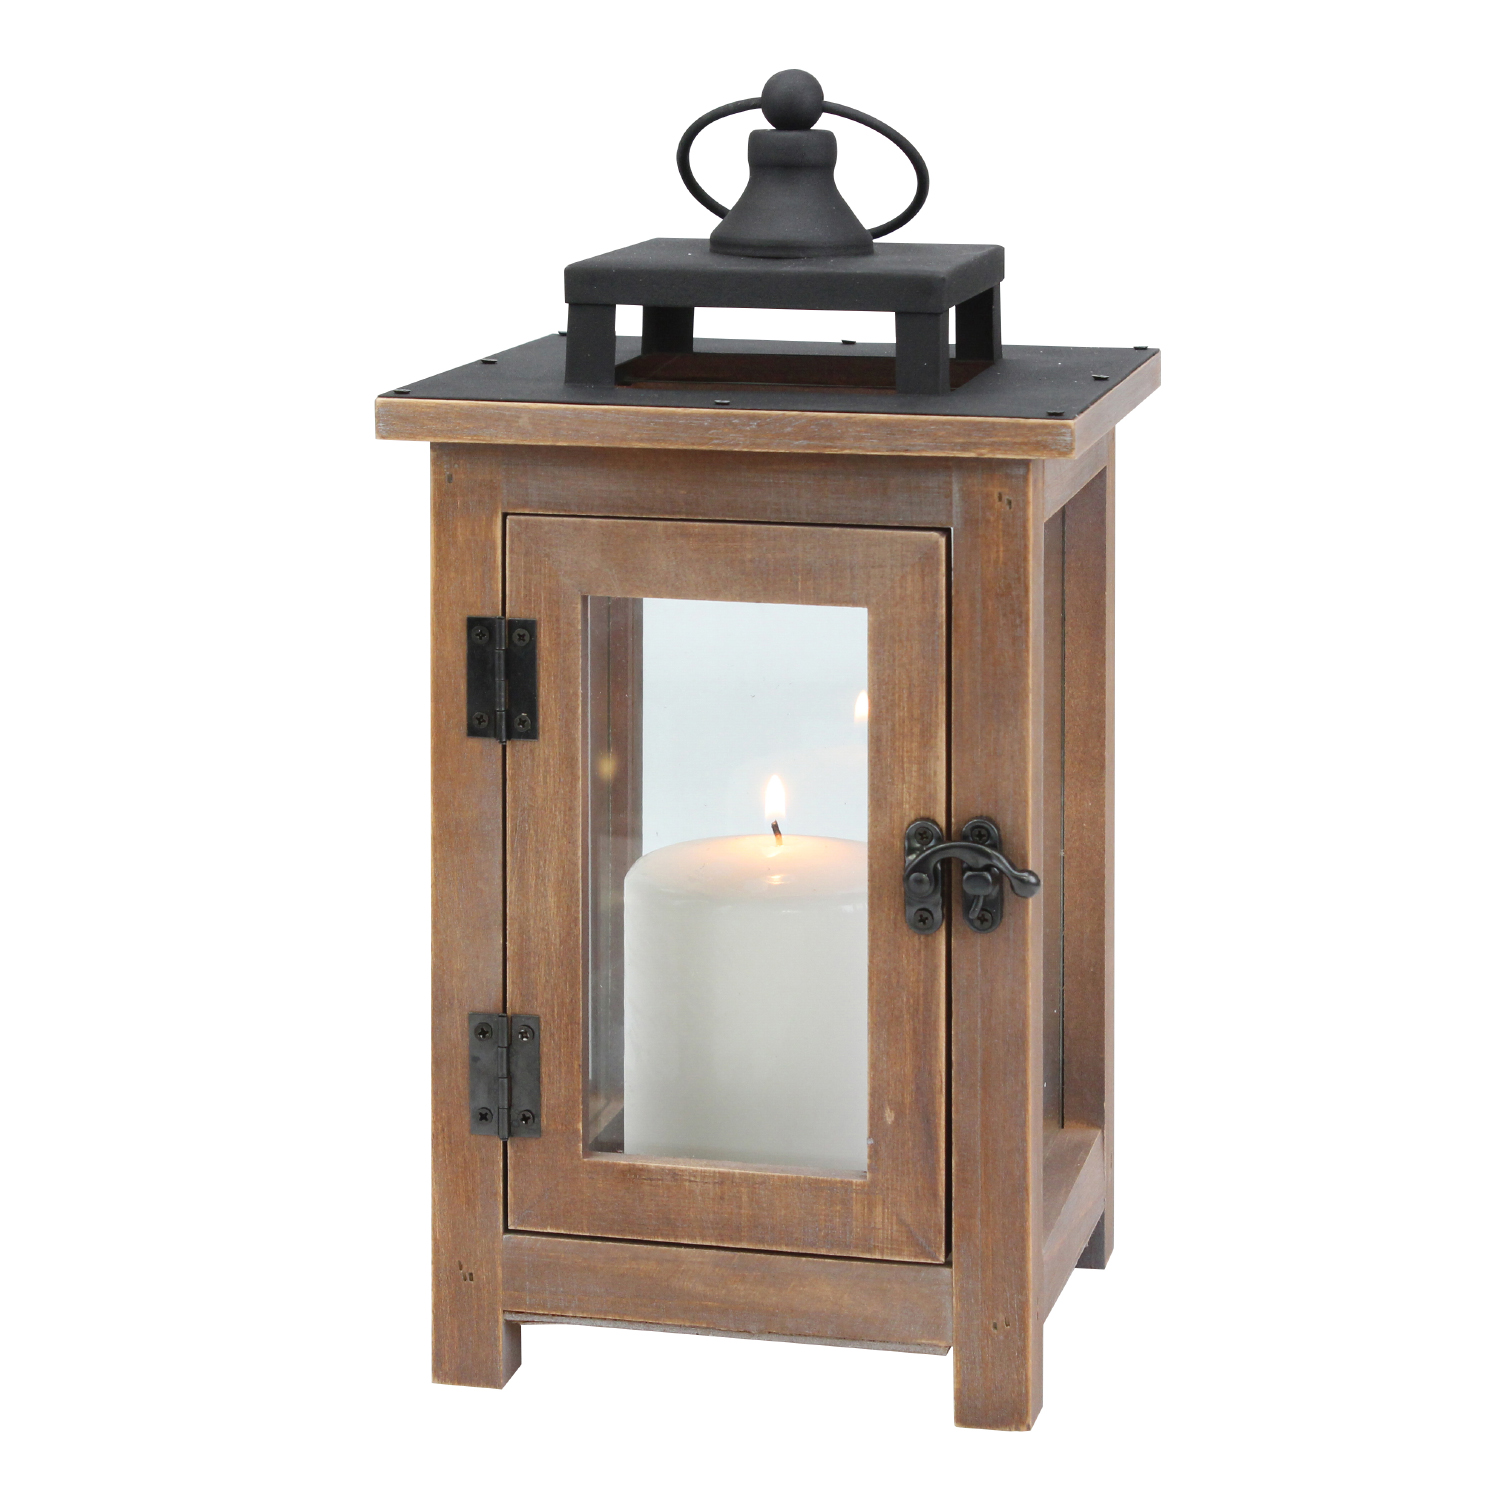 Better Homes & Gardens, Wood and Metal Lantern